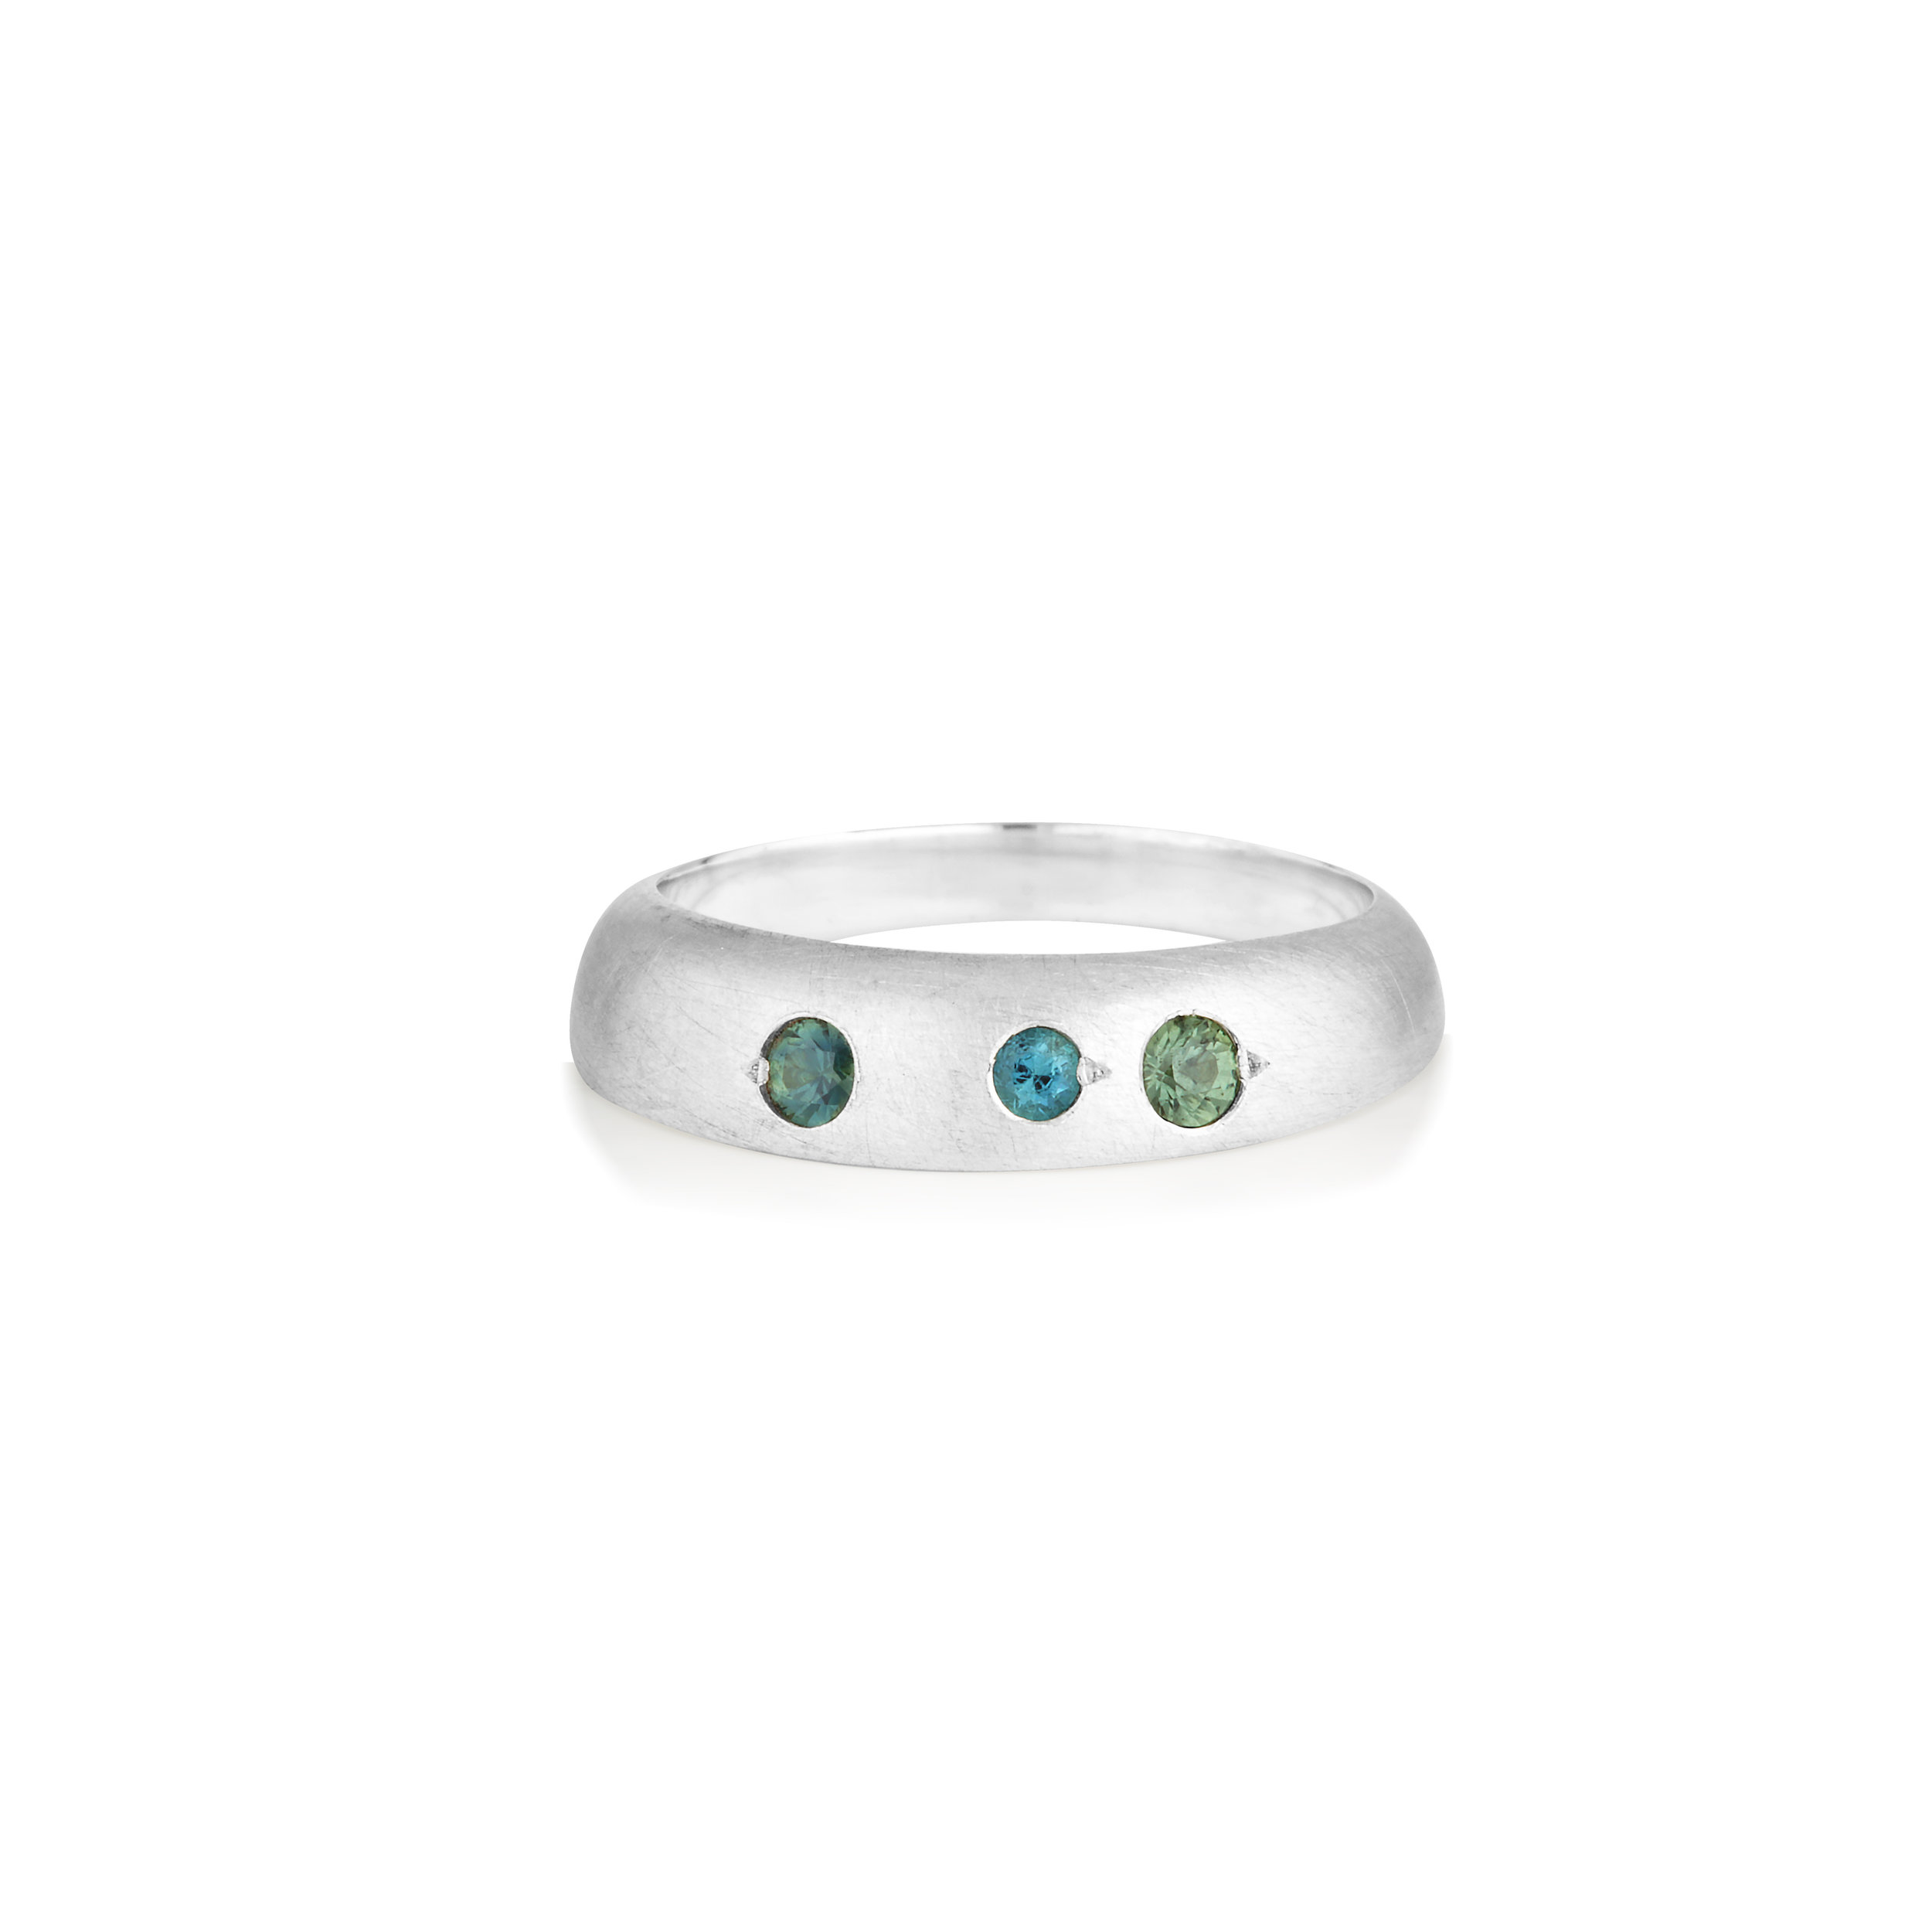 New in store arrivals - Balance and colour play gemstone rings available in store. Stack them or wear them individually